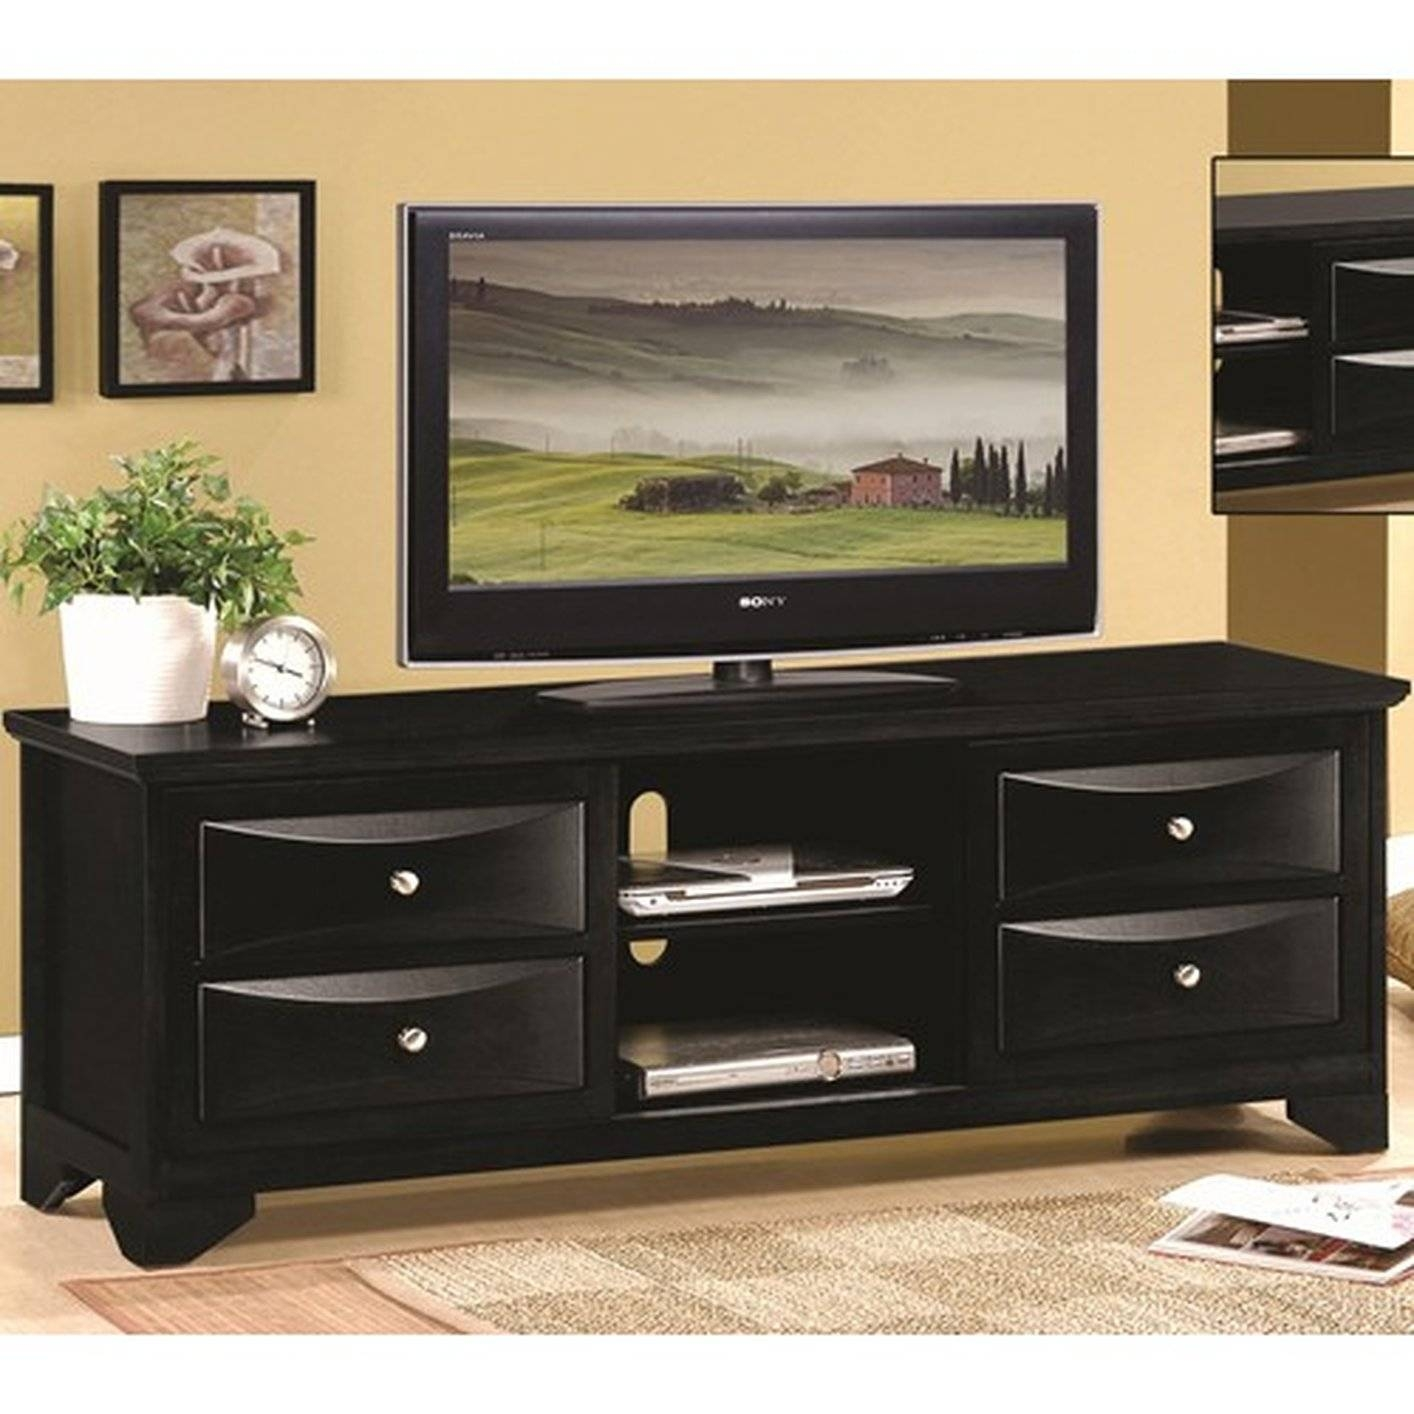 Black Wood Tv Stand - Steal-A-Sofa Furniture Outlet Los Angeles Ca intended for Black Tv Cabinets With Drawers (Image 5 of 15)